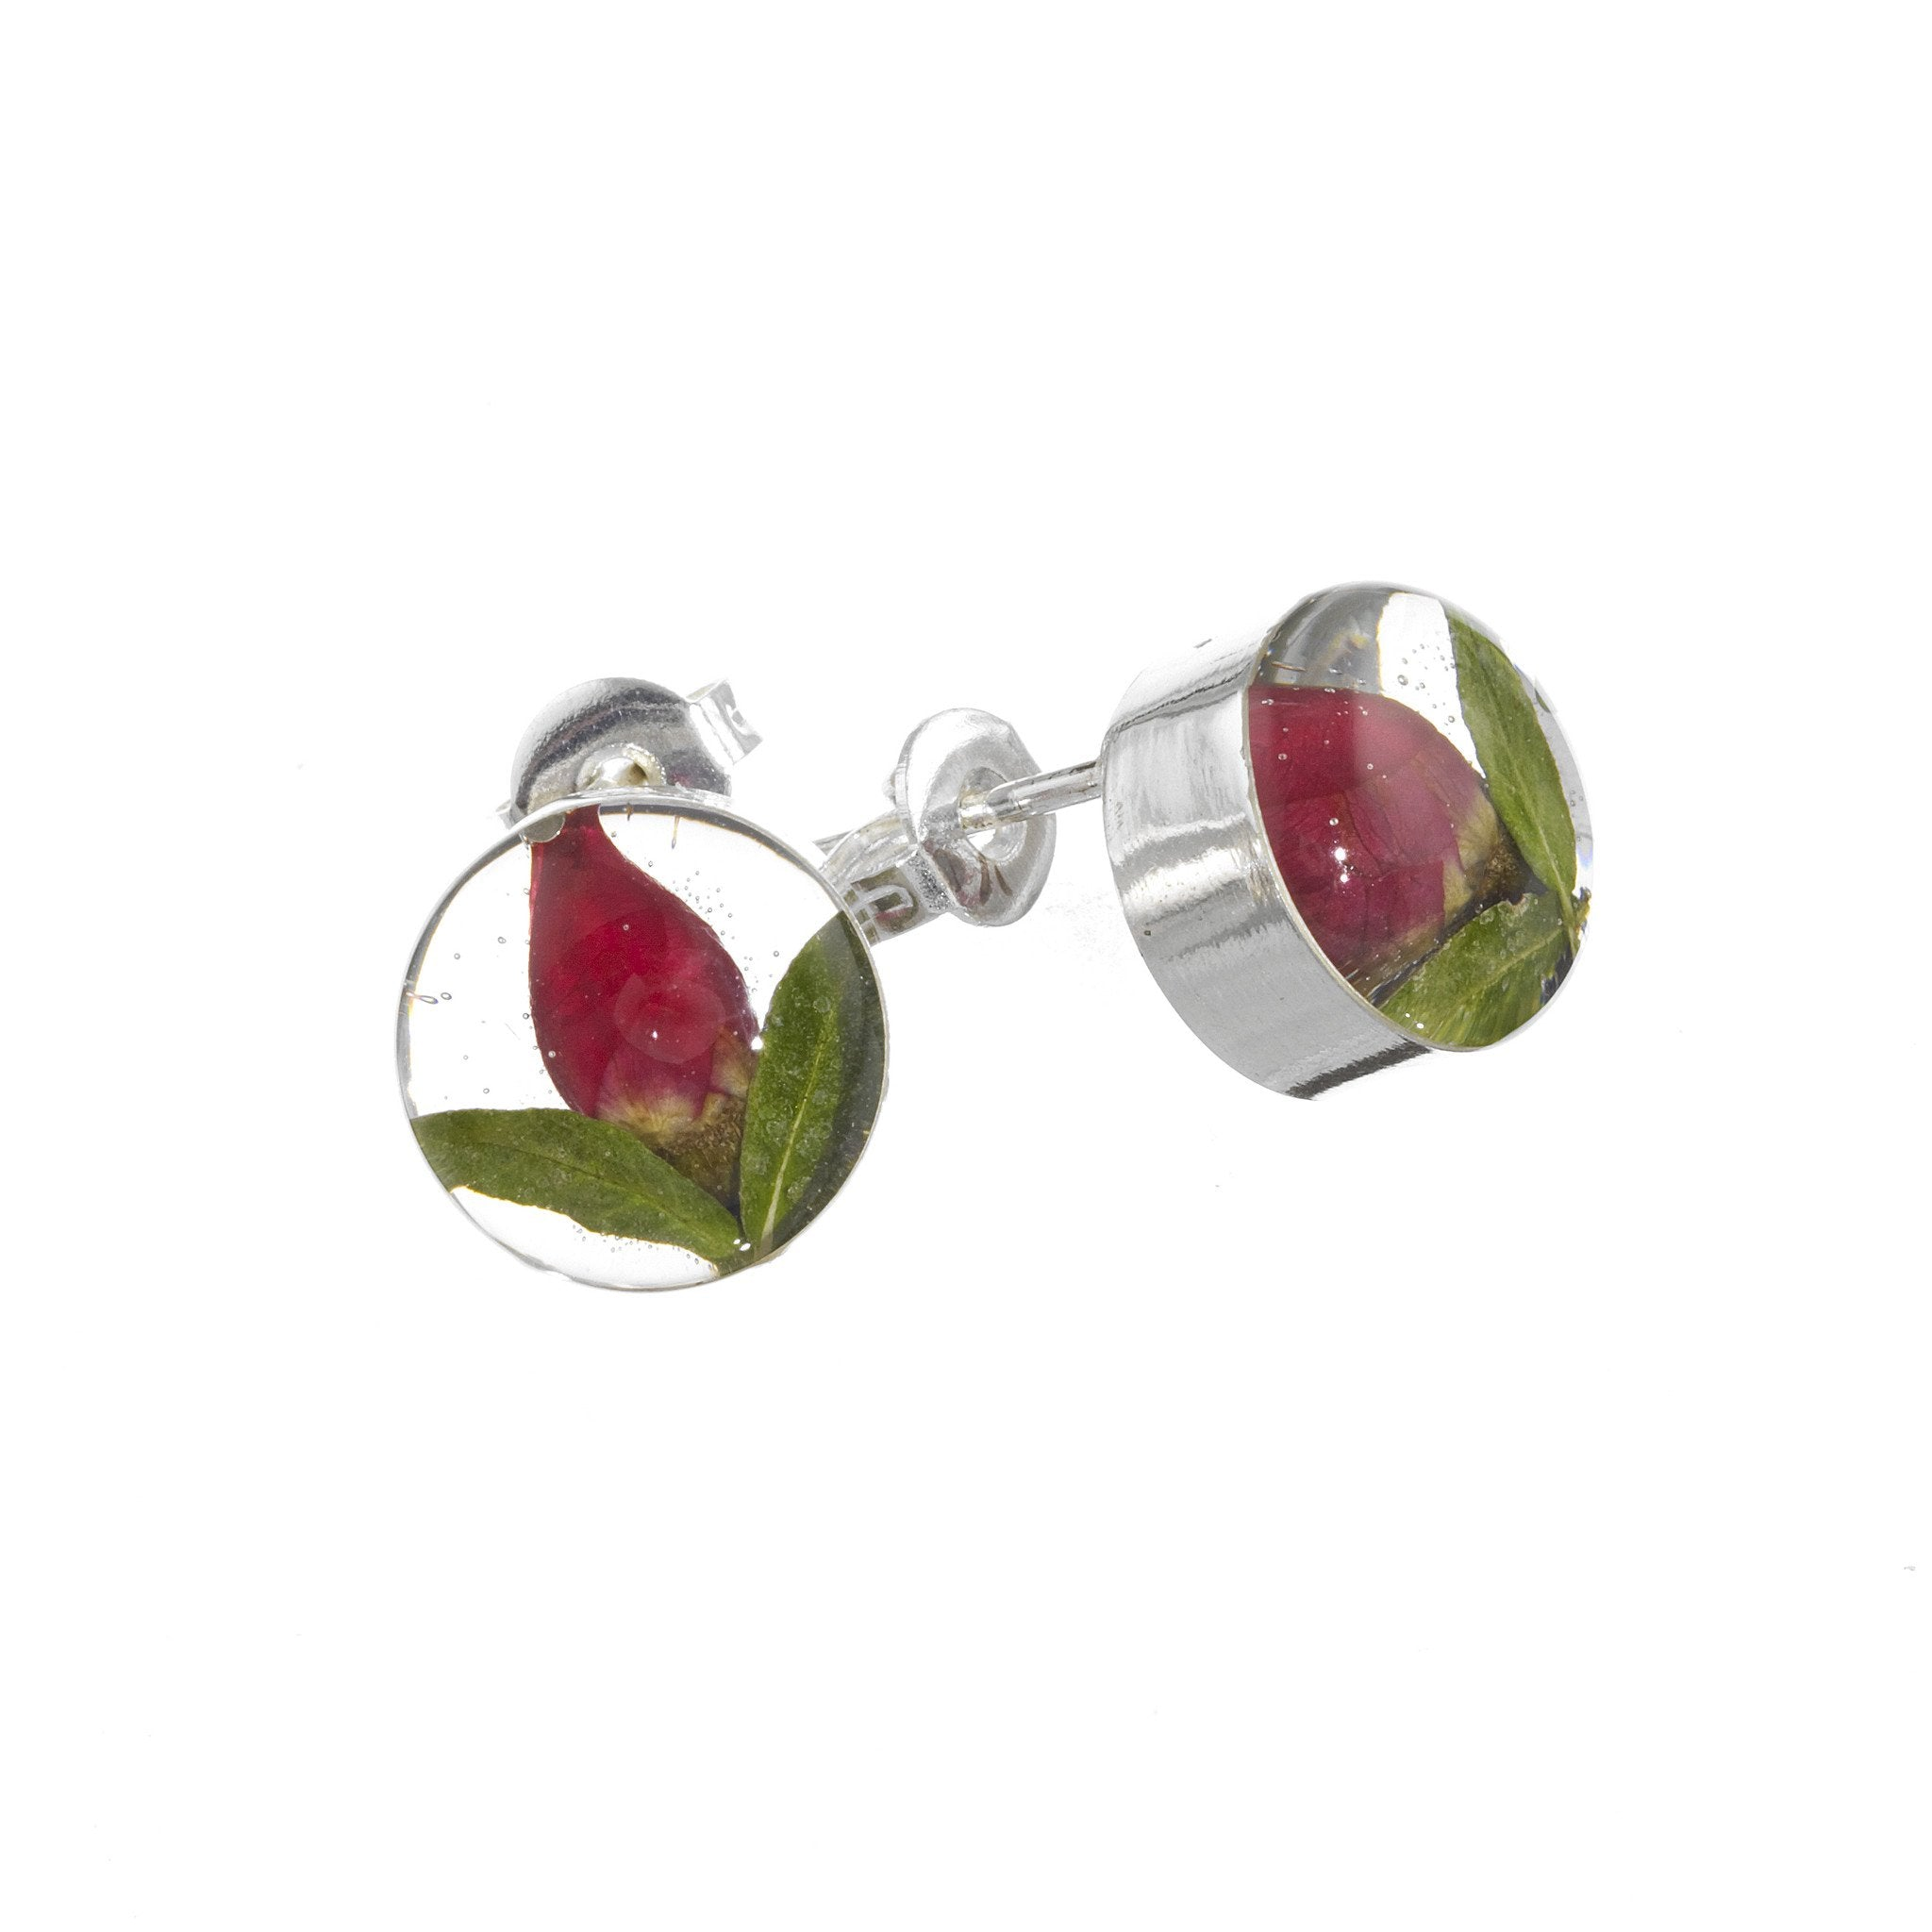 Shrieking Violet Earrings Rosebud Round Silver